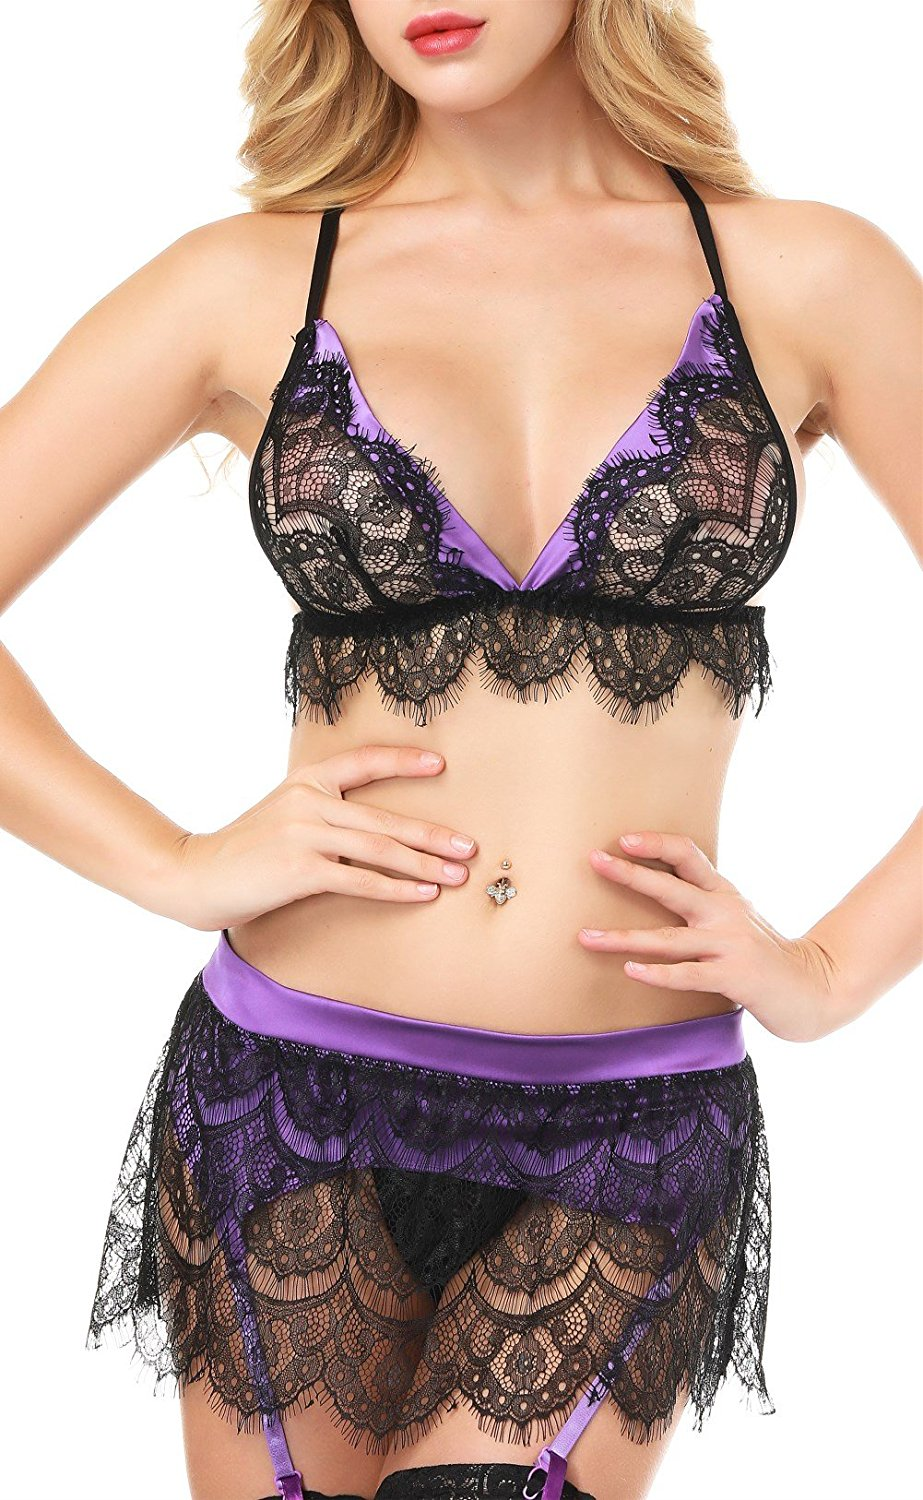 72939b6b86bec ... Sexy Lingerie Lace Bra Set Womens Babydoll Black Purple Scalloped  Bralette Set with G-String ...